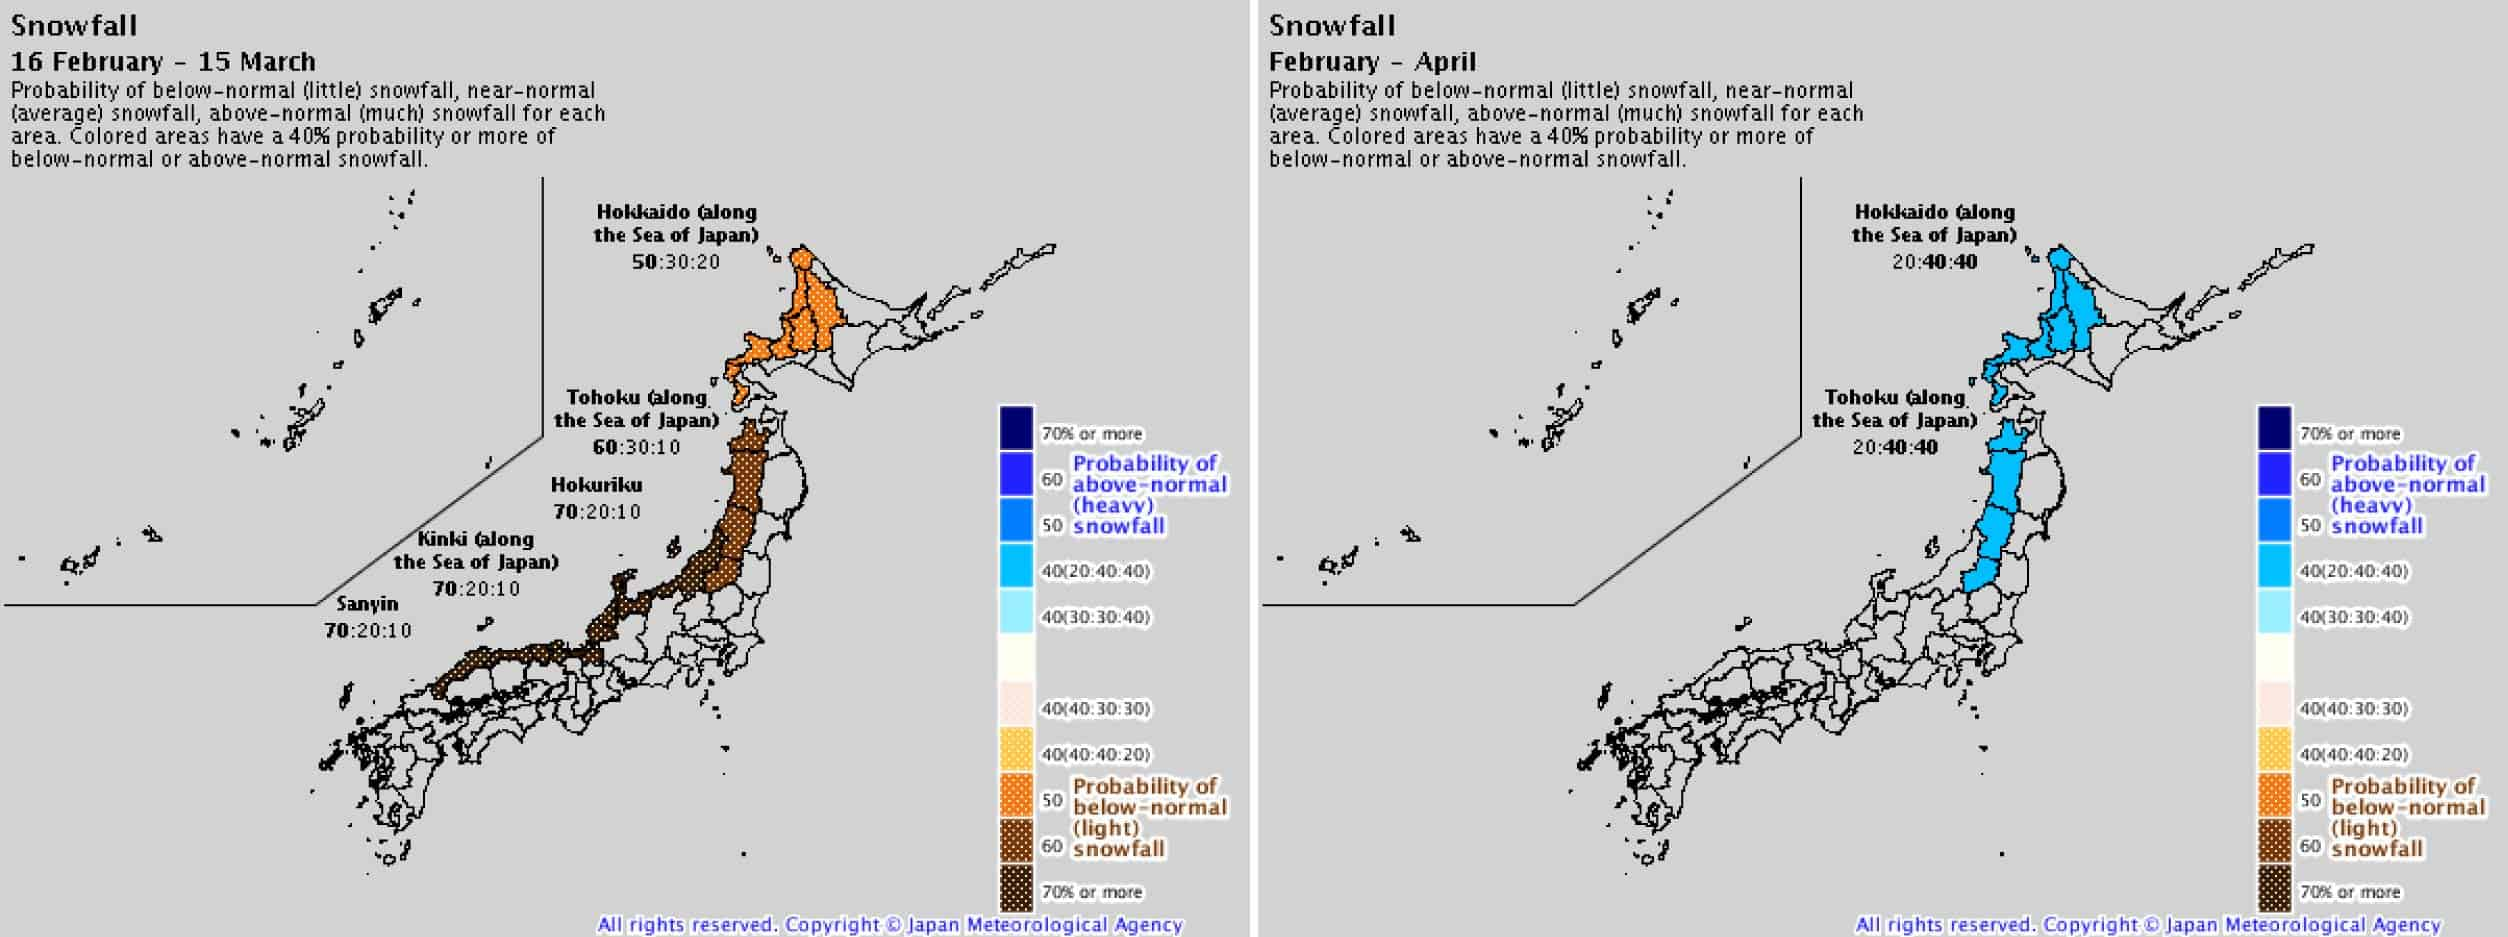 Japanese Meteorological Agency Japan snow season 2019 forecast